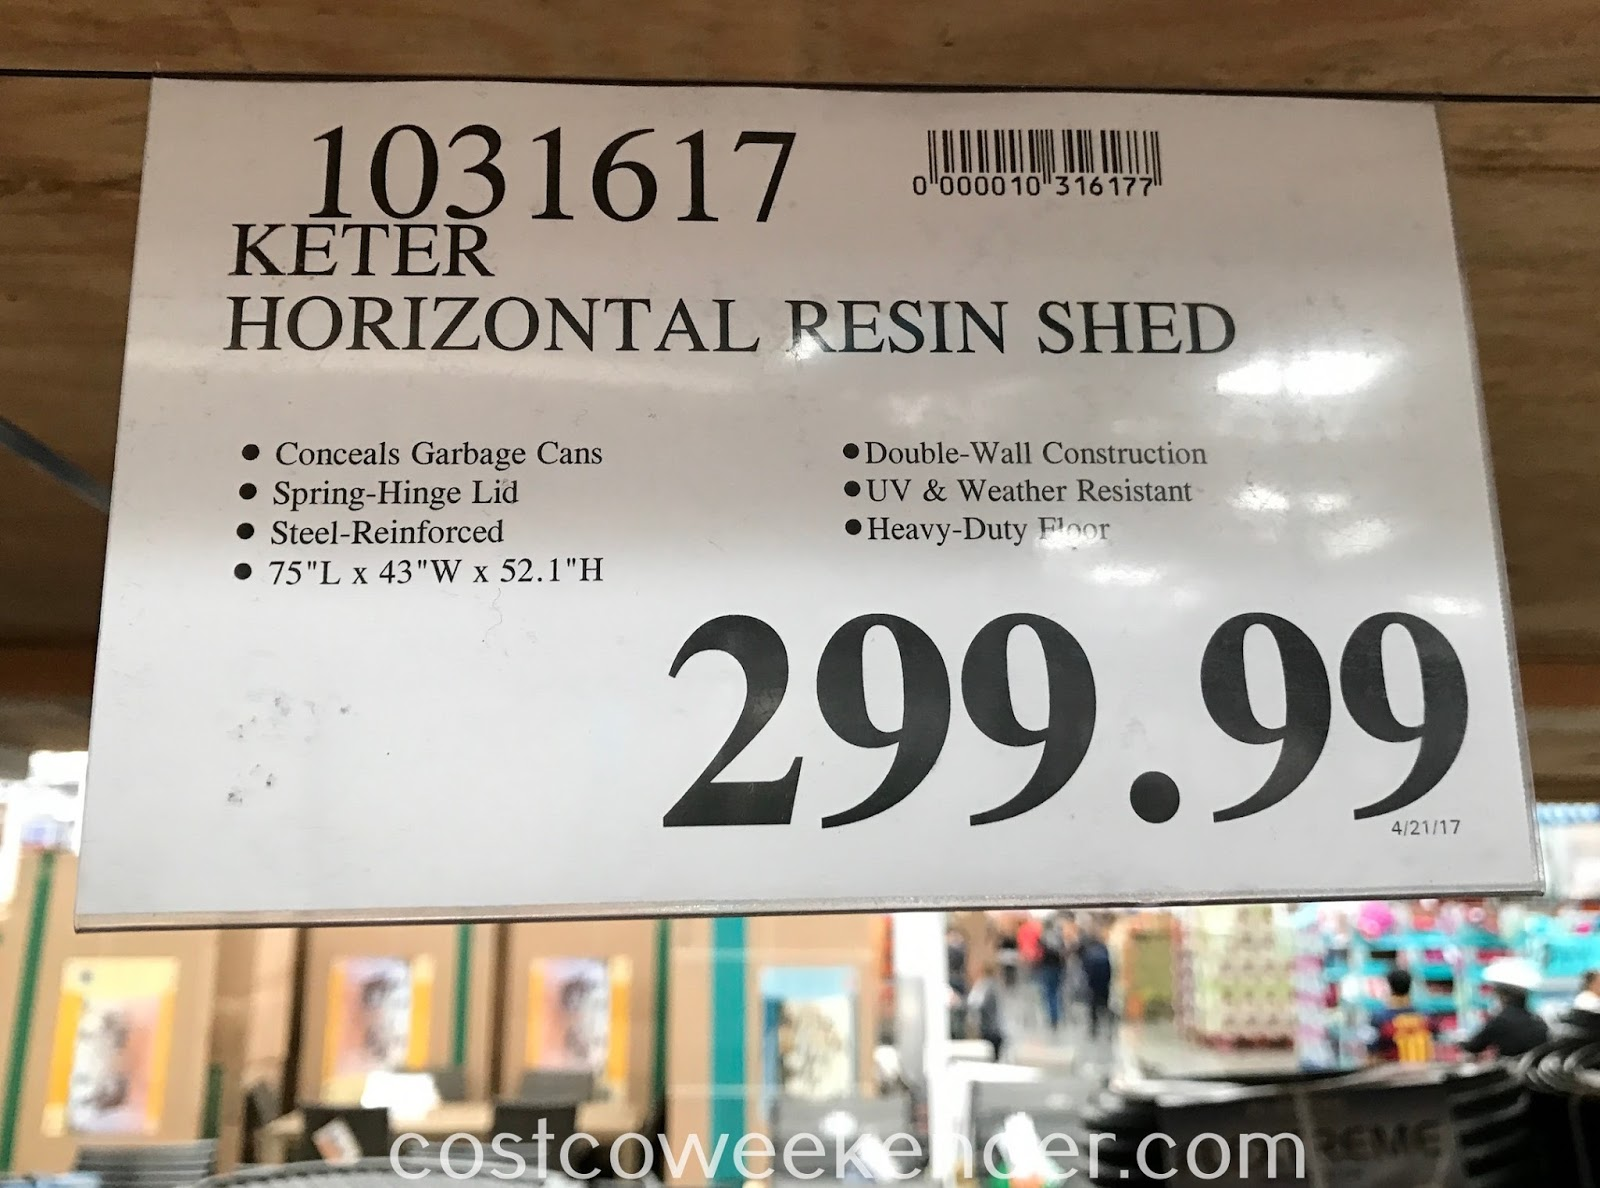 Deal for the Keter Horizontal Storage Shed at Costco